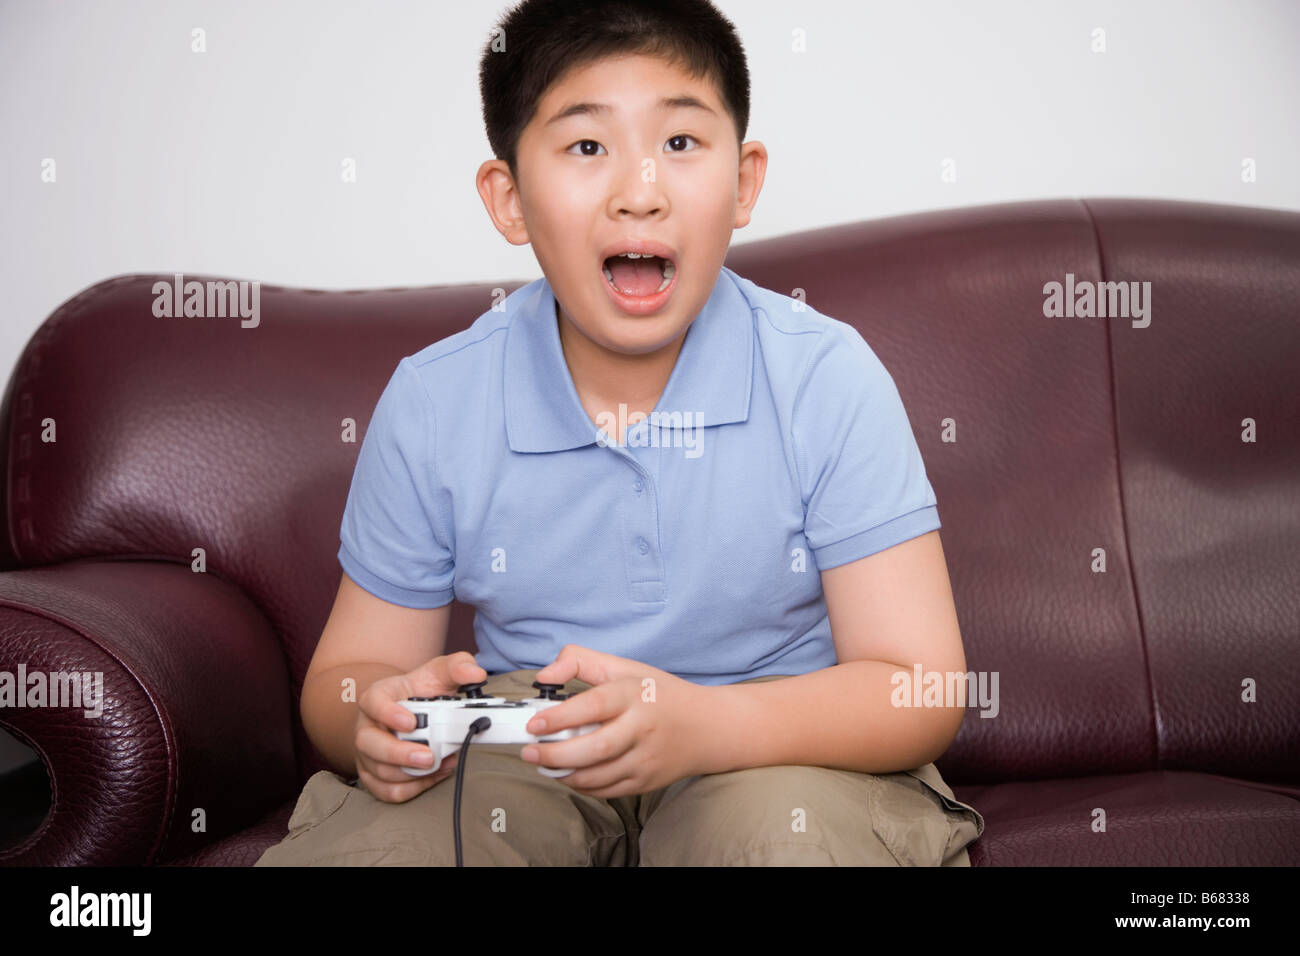 Boy playing video game - Stock Image